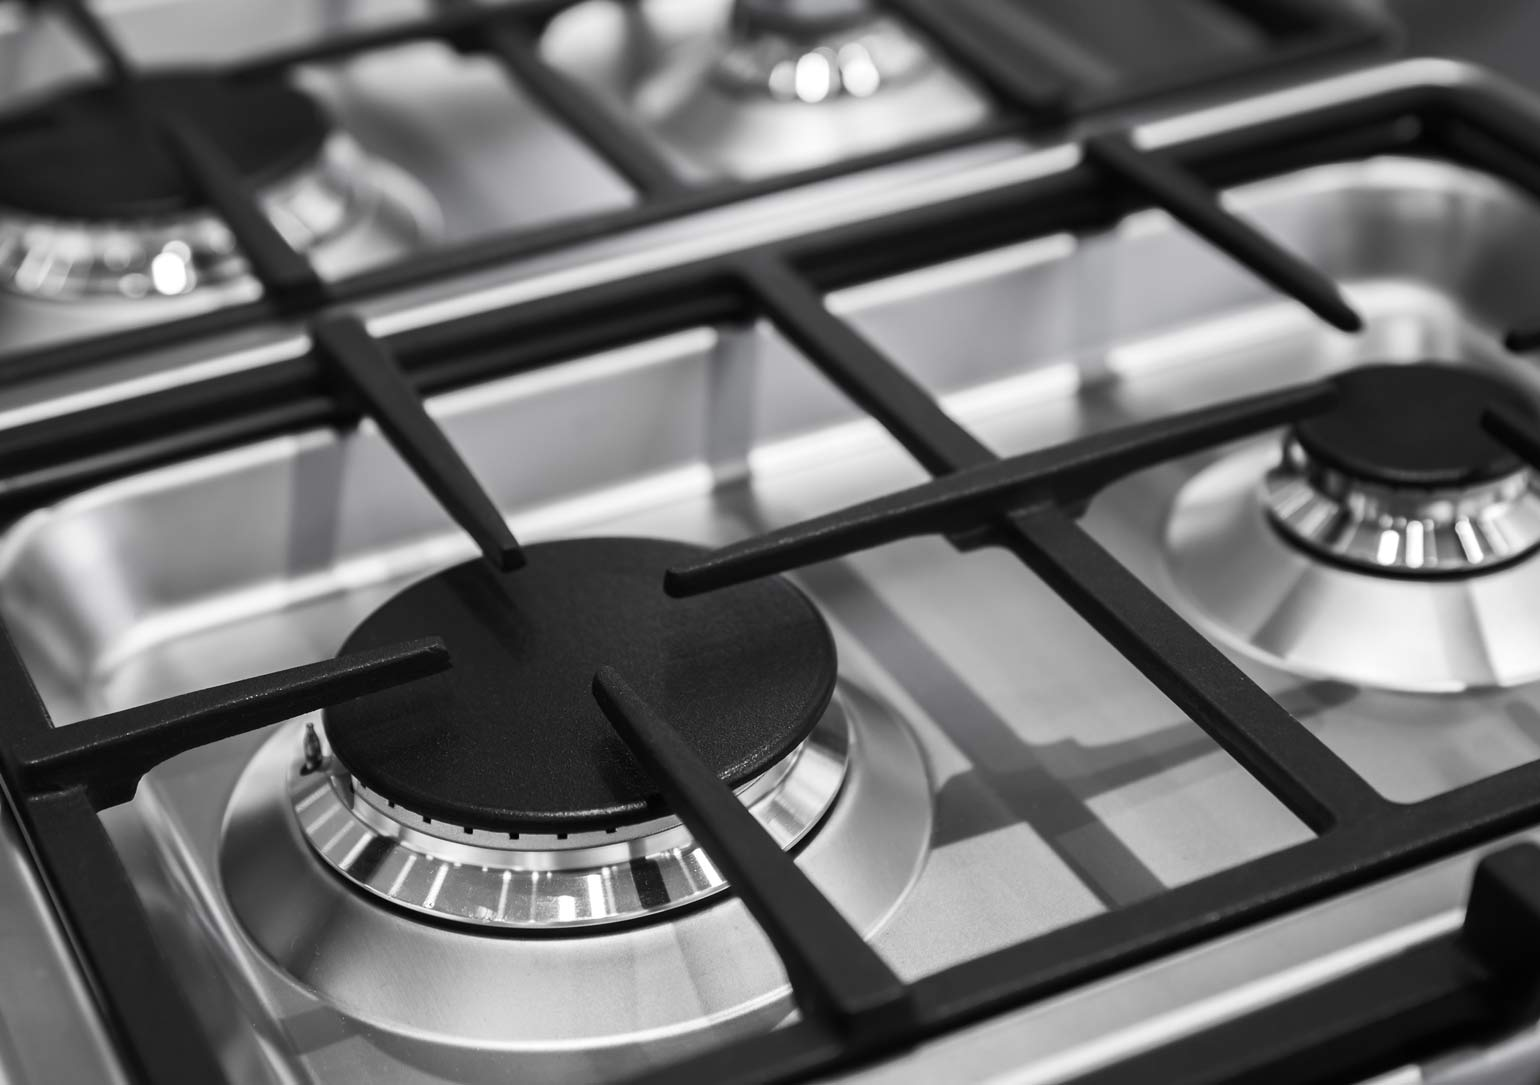 End of tenancy oven cleaning services in Northampton